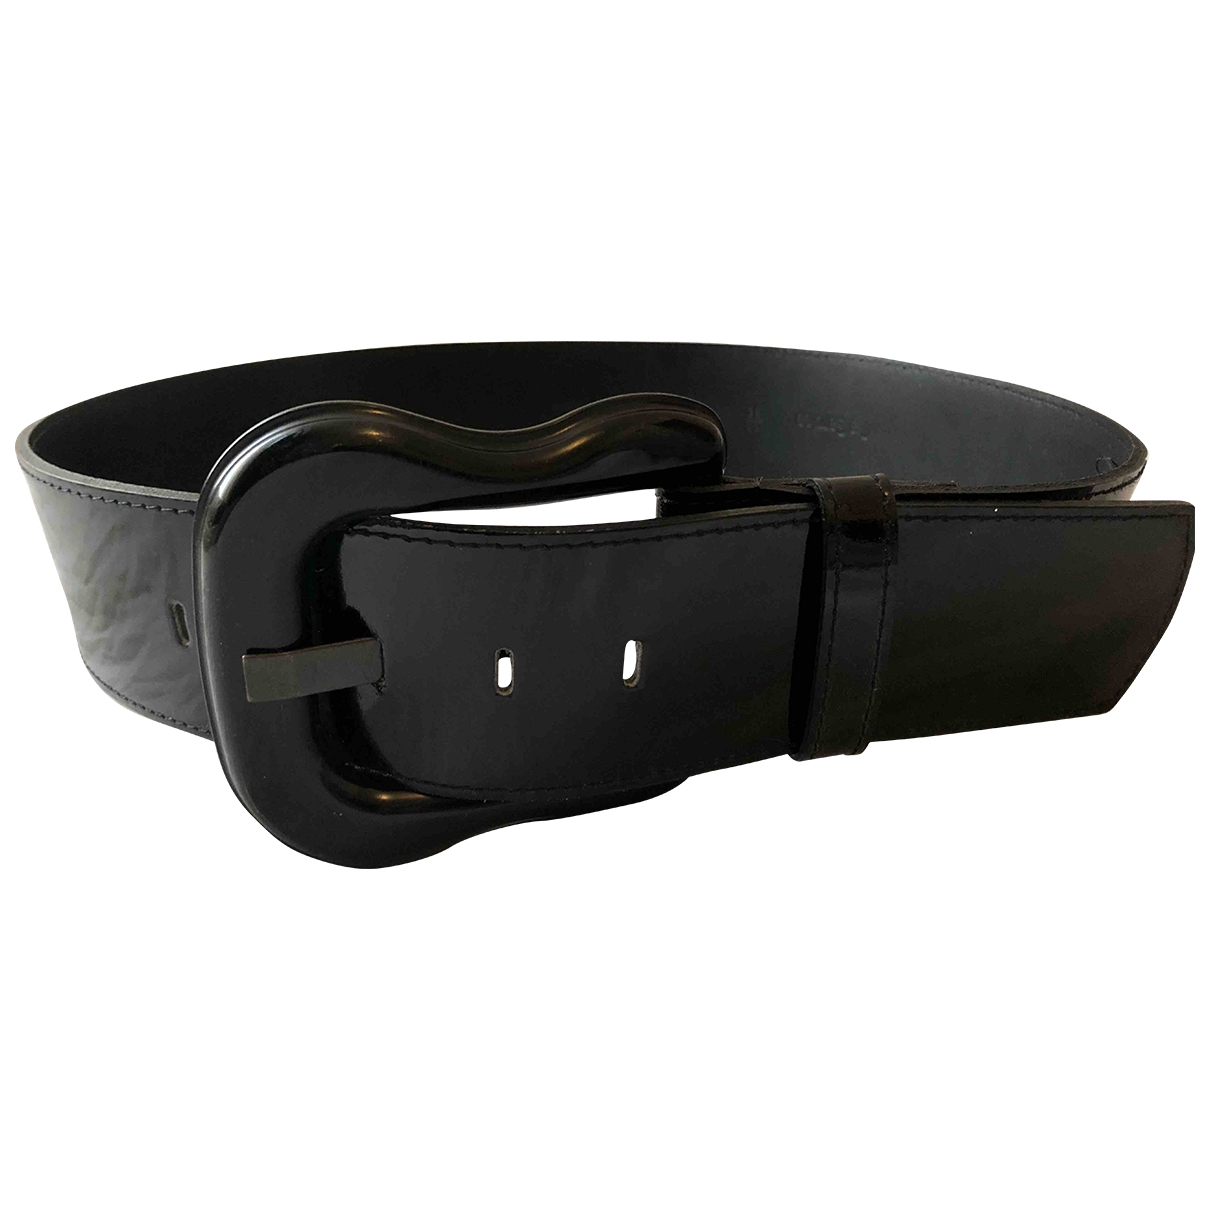 Fendi \N Black Patent leather belt for Women 90 cm